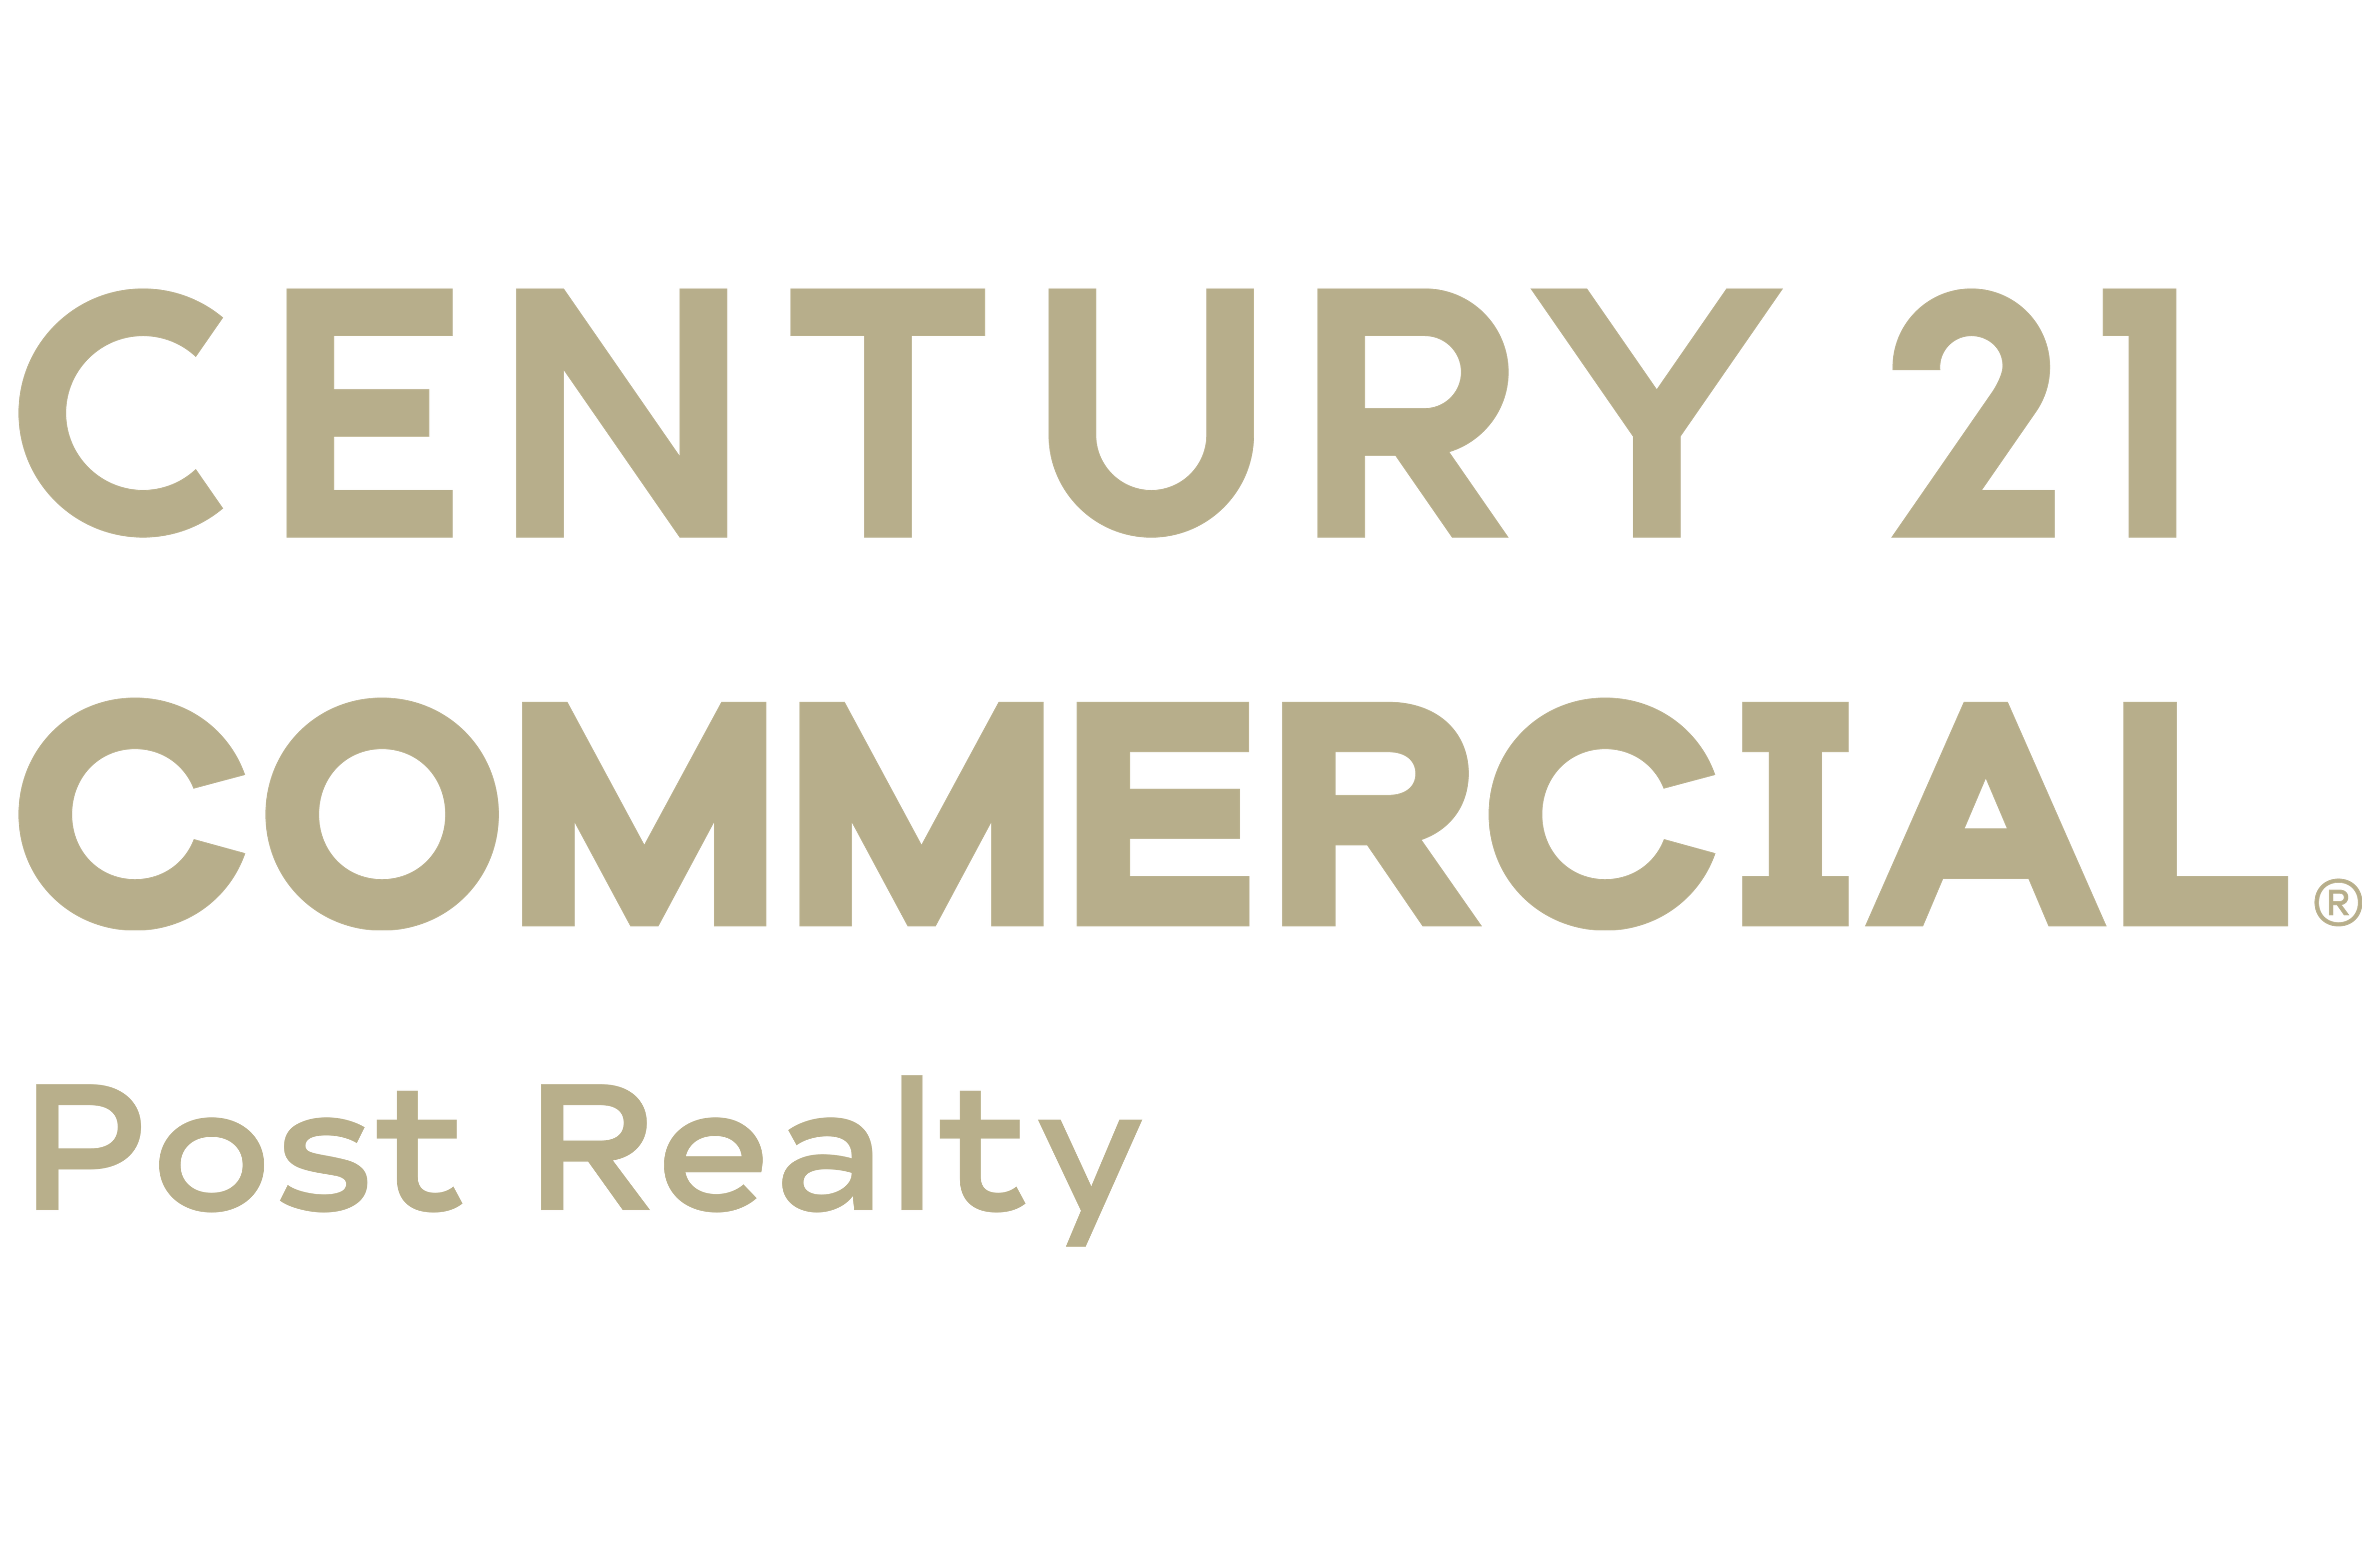 CENTURY 21 Post Realty